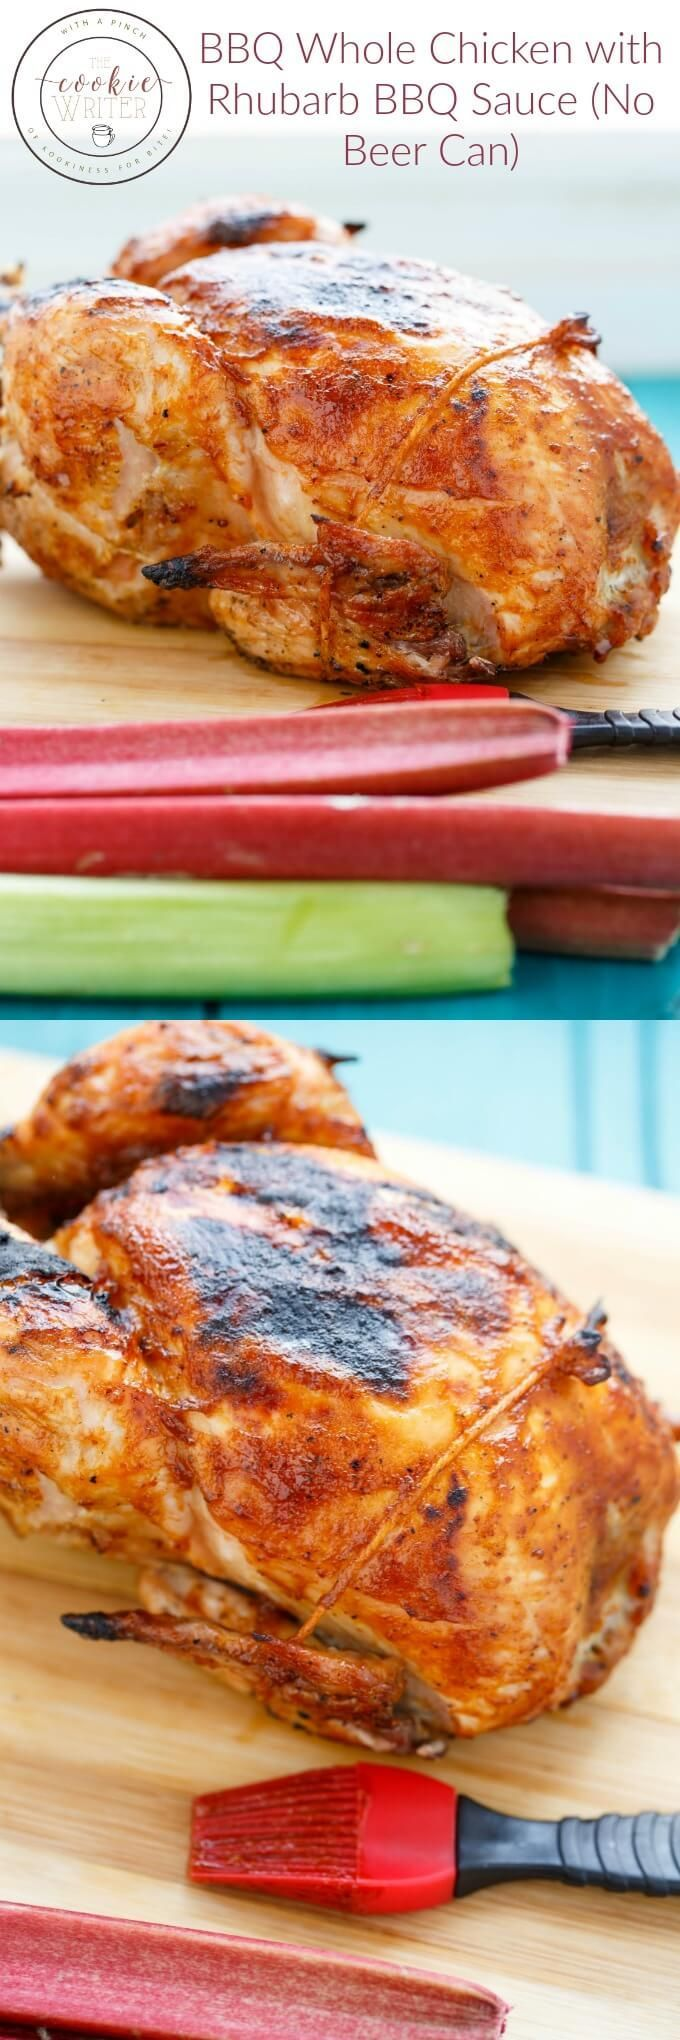 BBQ Whole Chicken with Rhubarb BBQ Sauce (No Beer Can) | @thecookiewriter